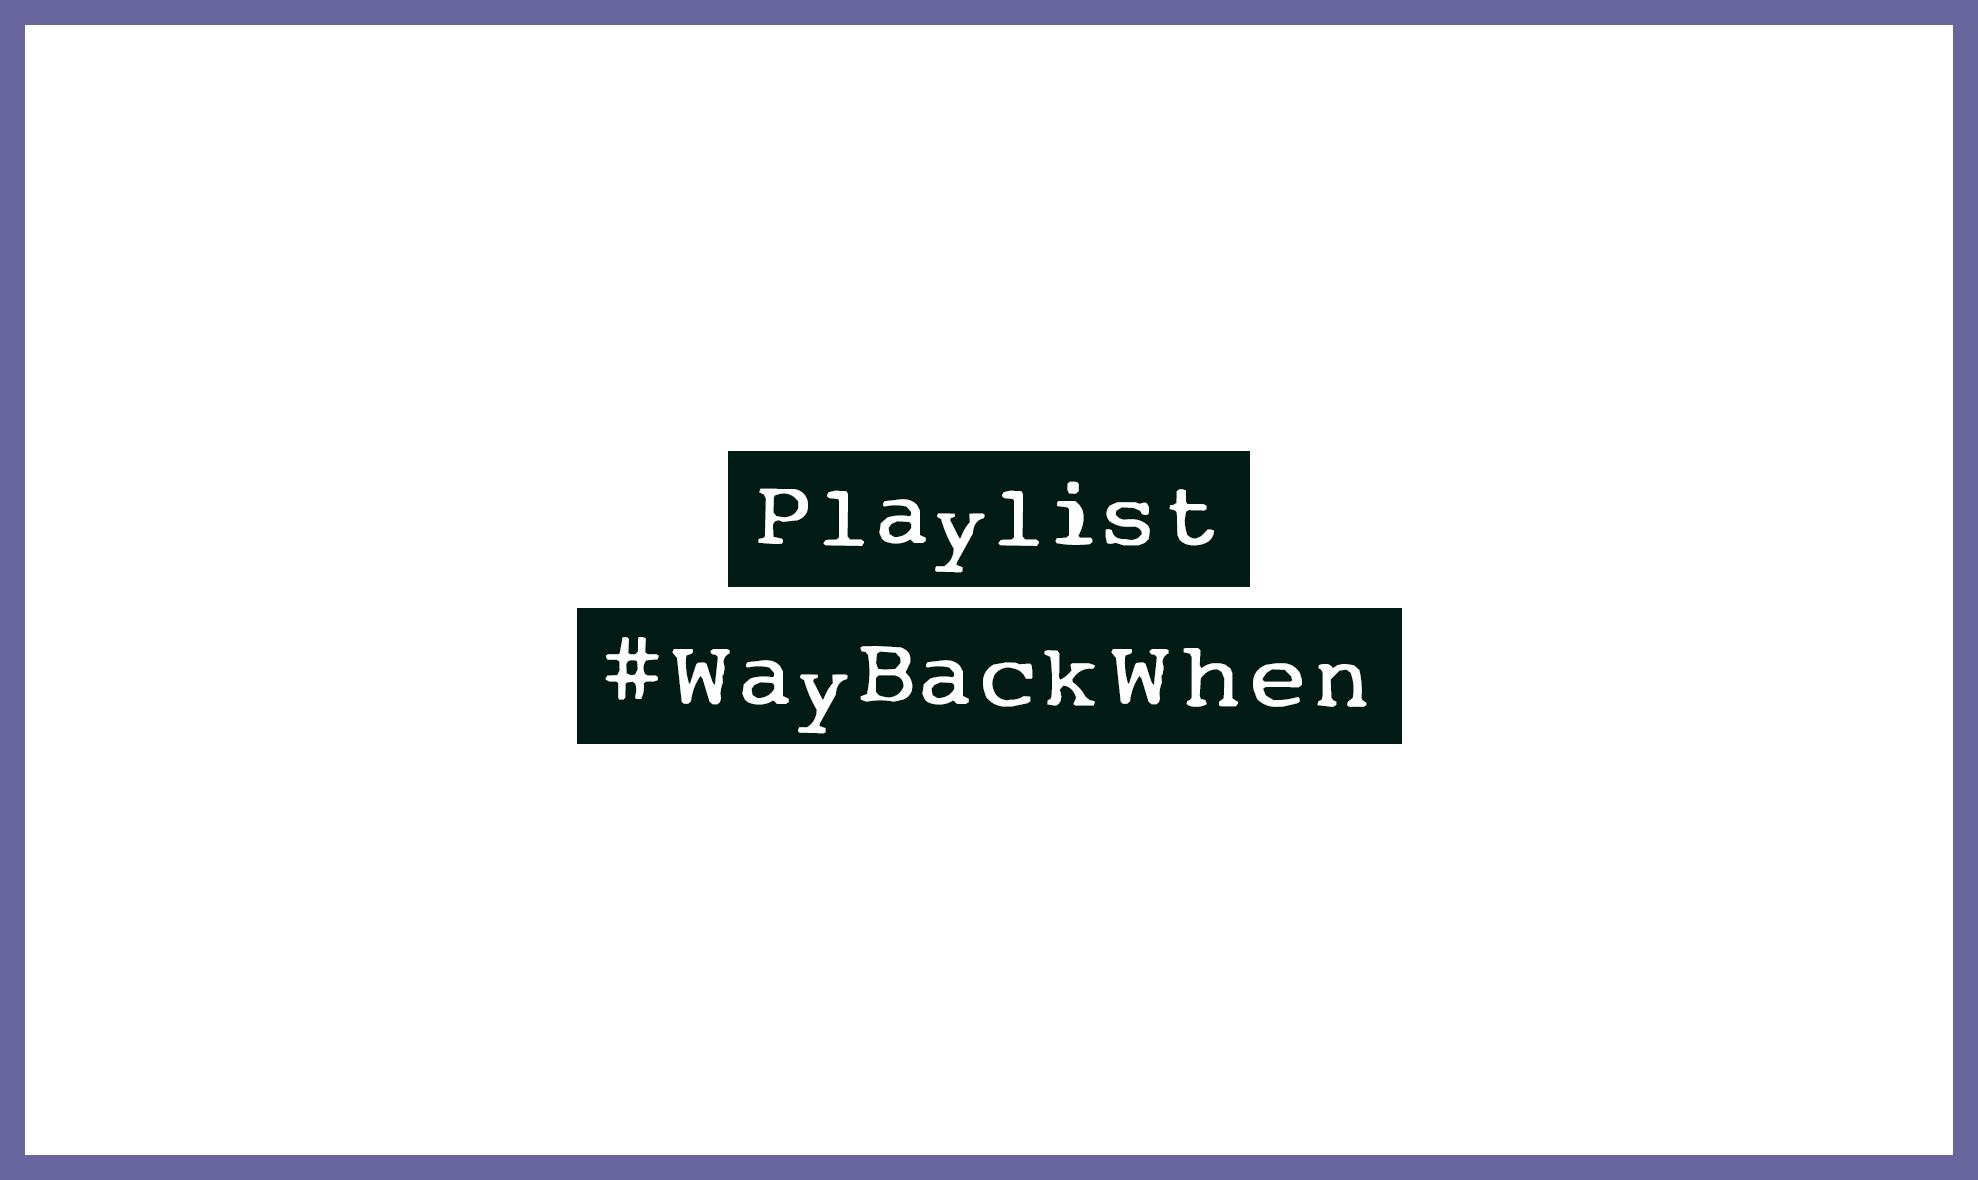 Playlist zum Festival #WayBackWhen